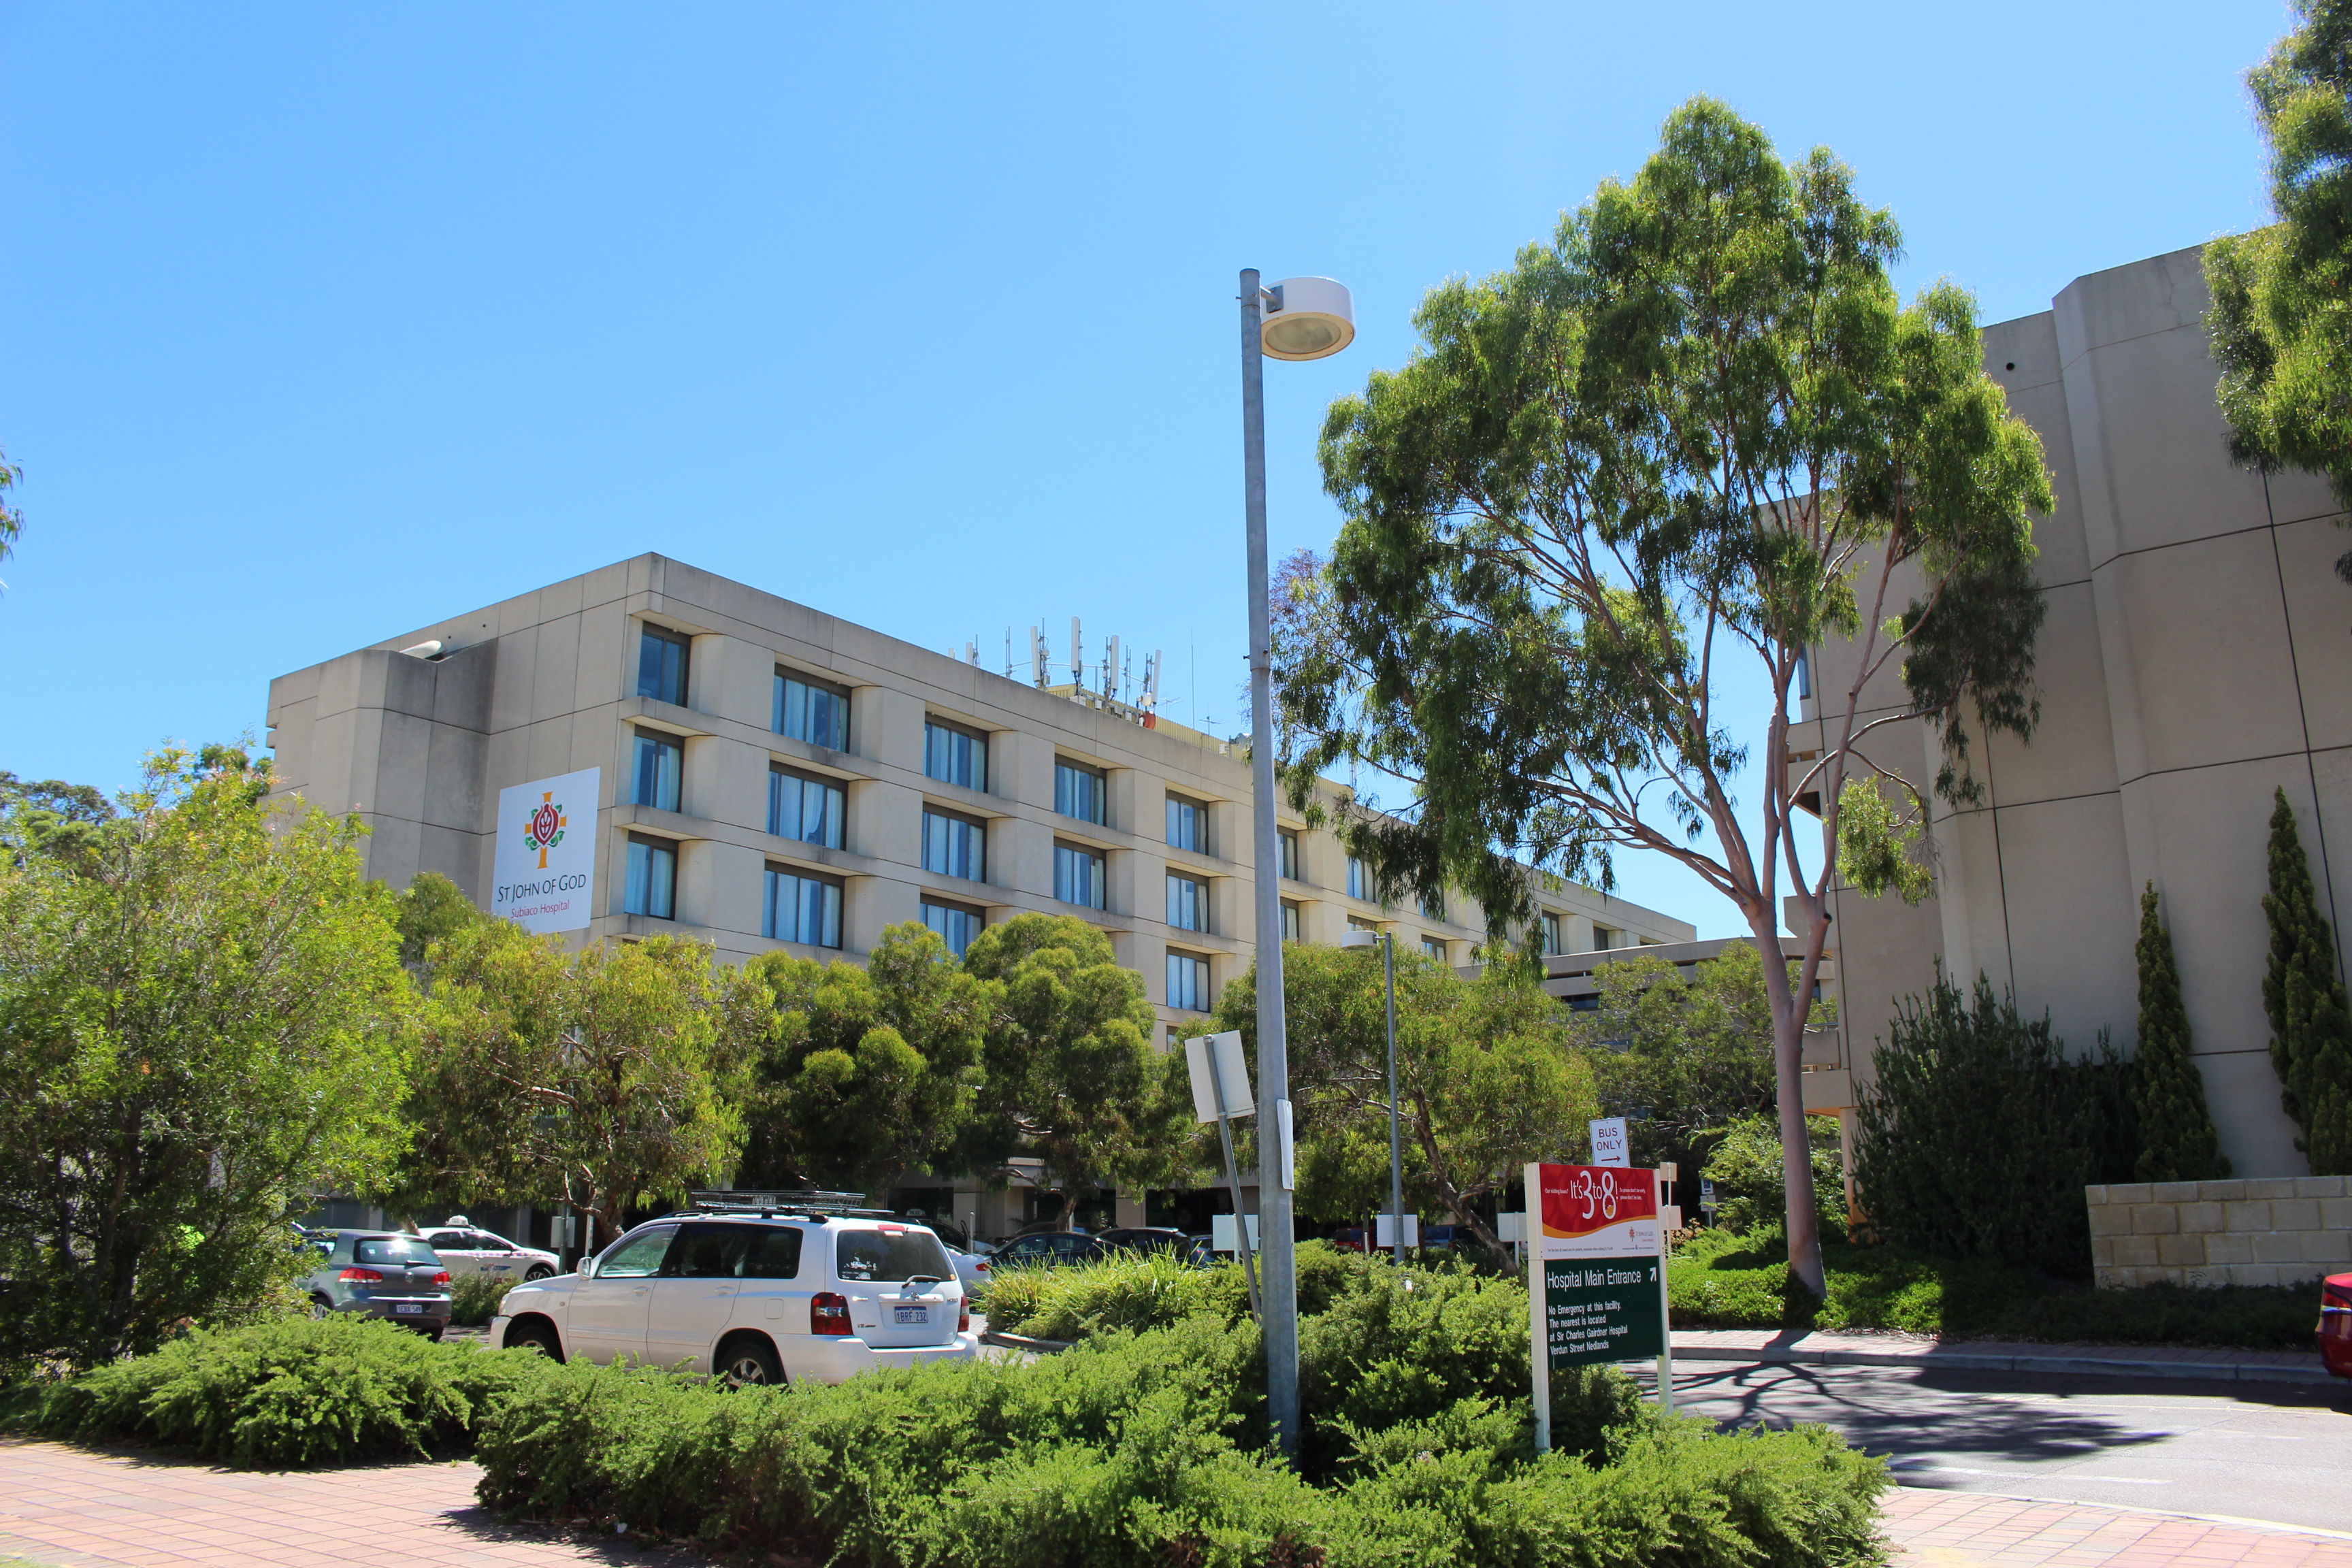 St John of God Hospital's Medical Centre in Subiaco will not be demolished